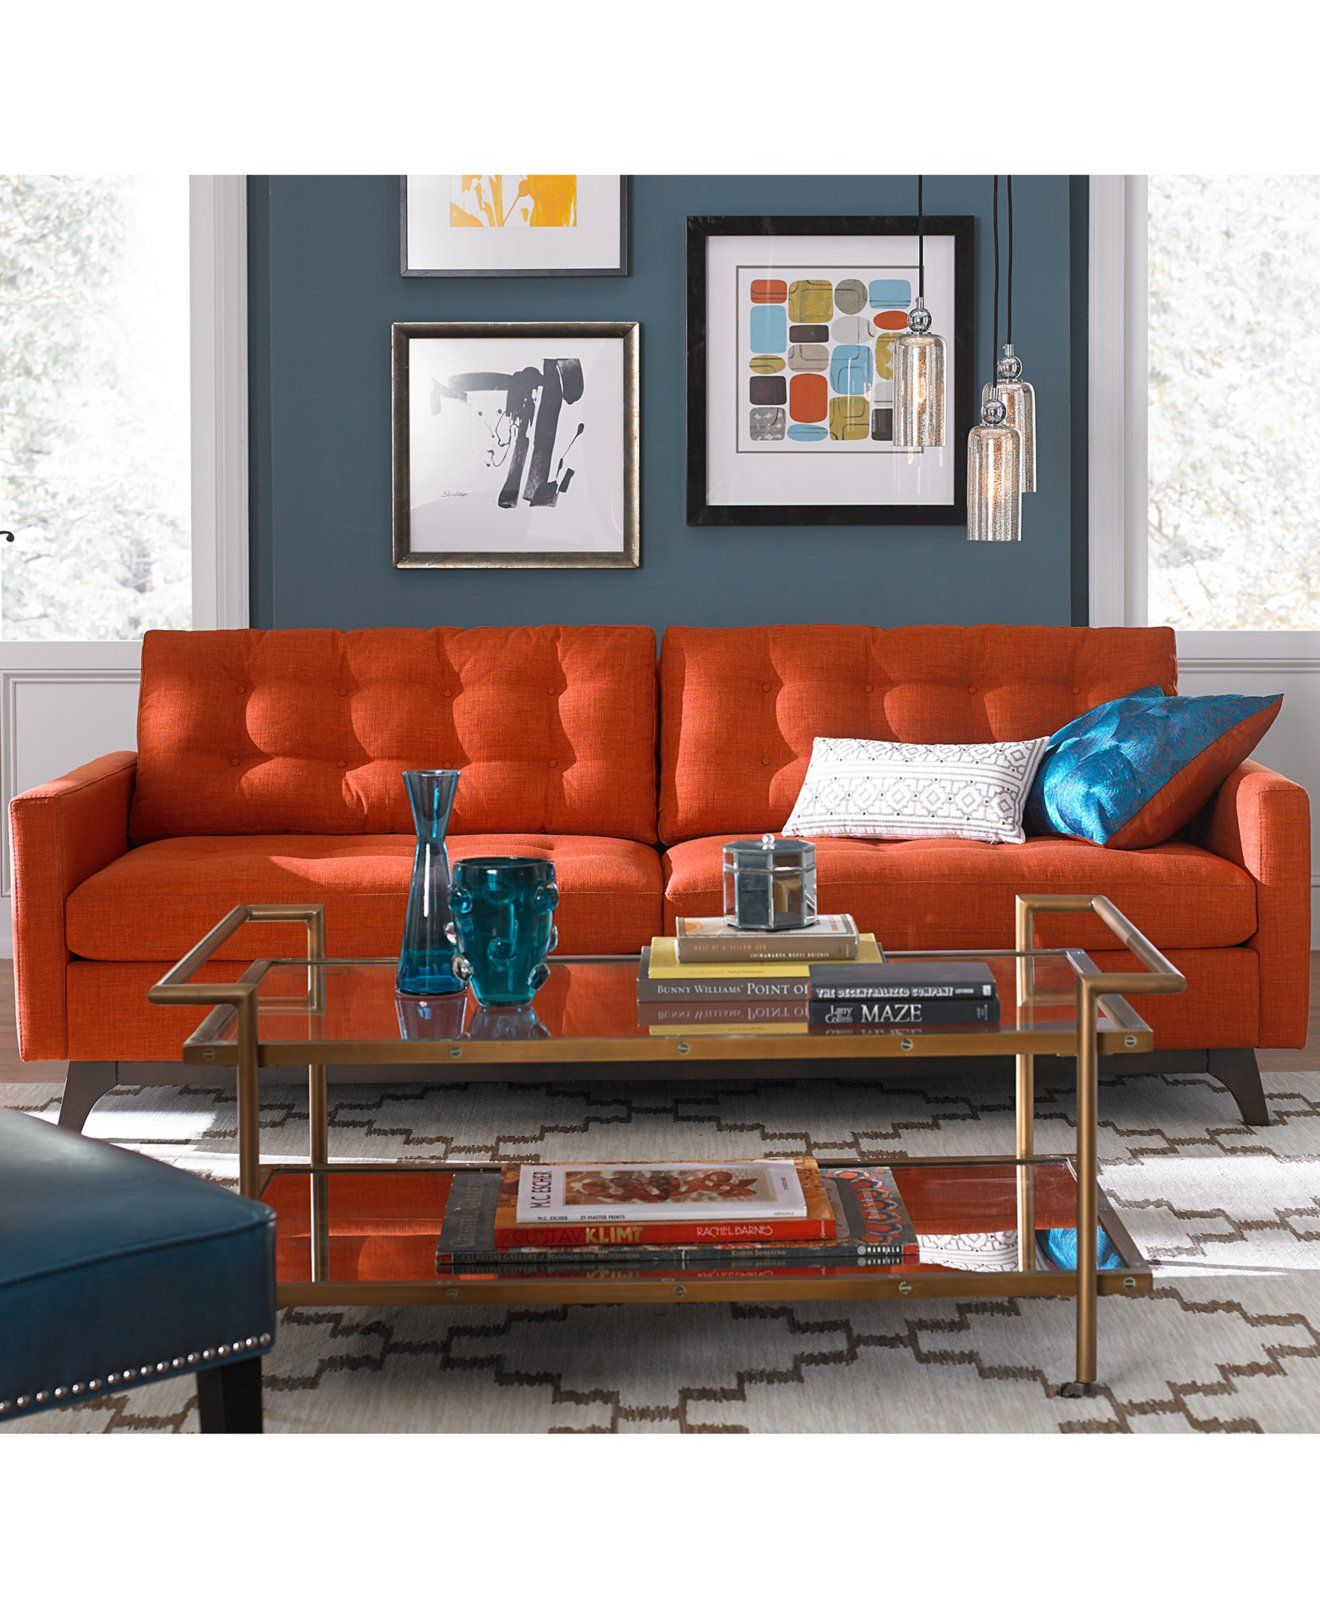 Karlie Fabric Sofa Ended Up Getting This One In A Custom Dark Blue Midnight Fa Living Room Orange Living Room Furniture Collections Modern Sofa Living Room